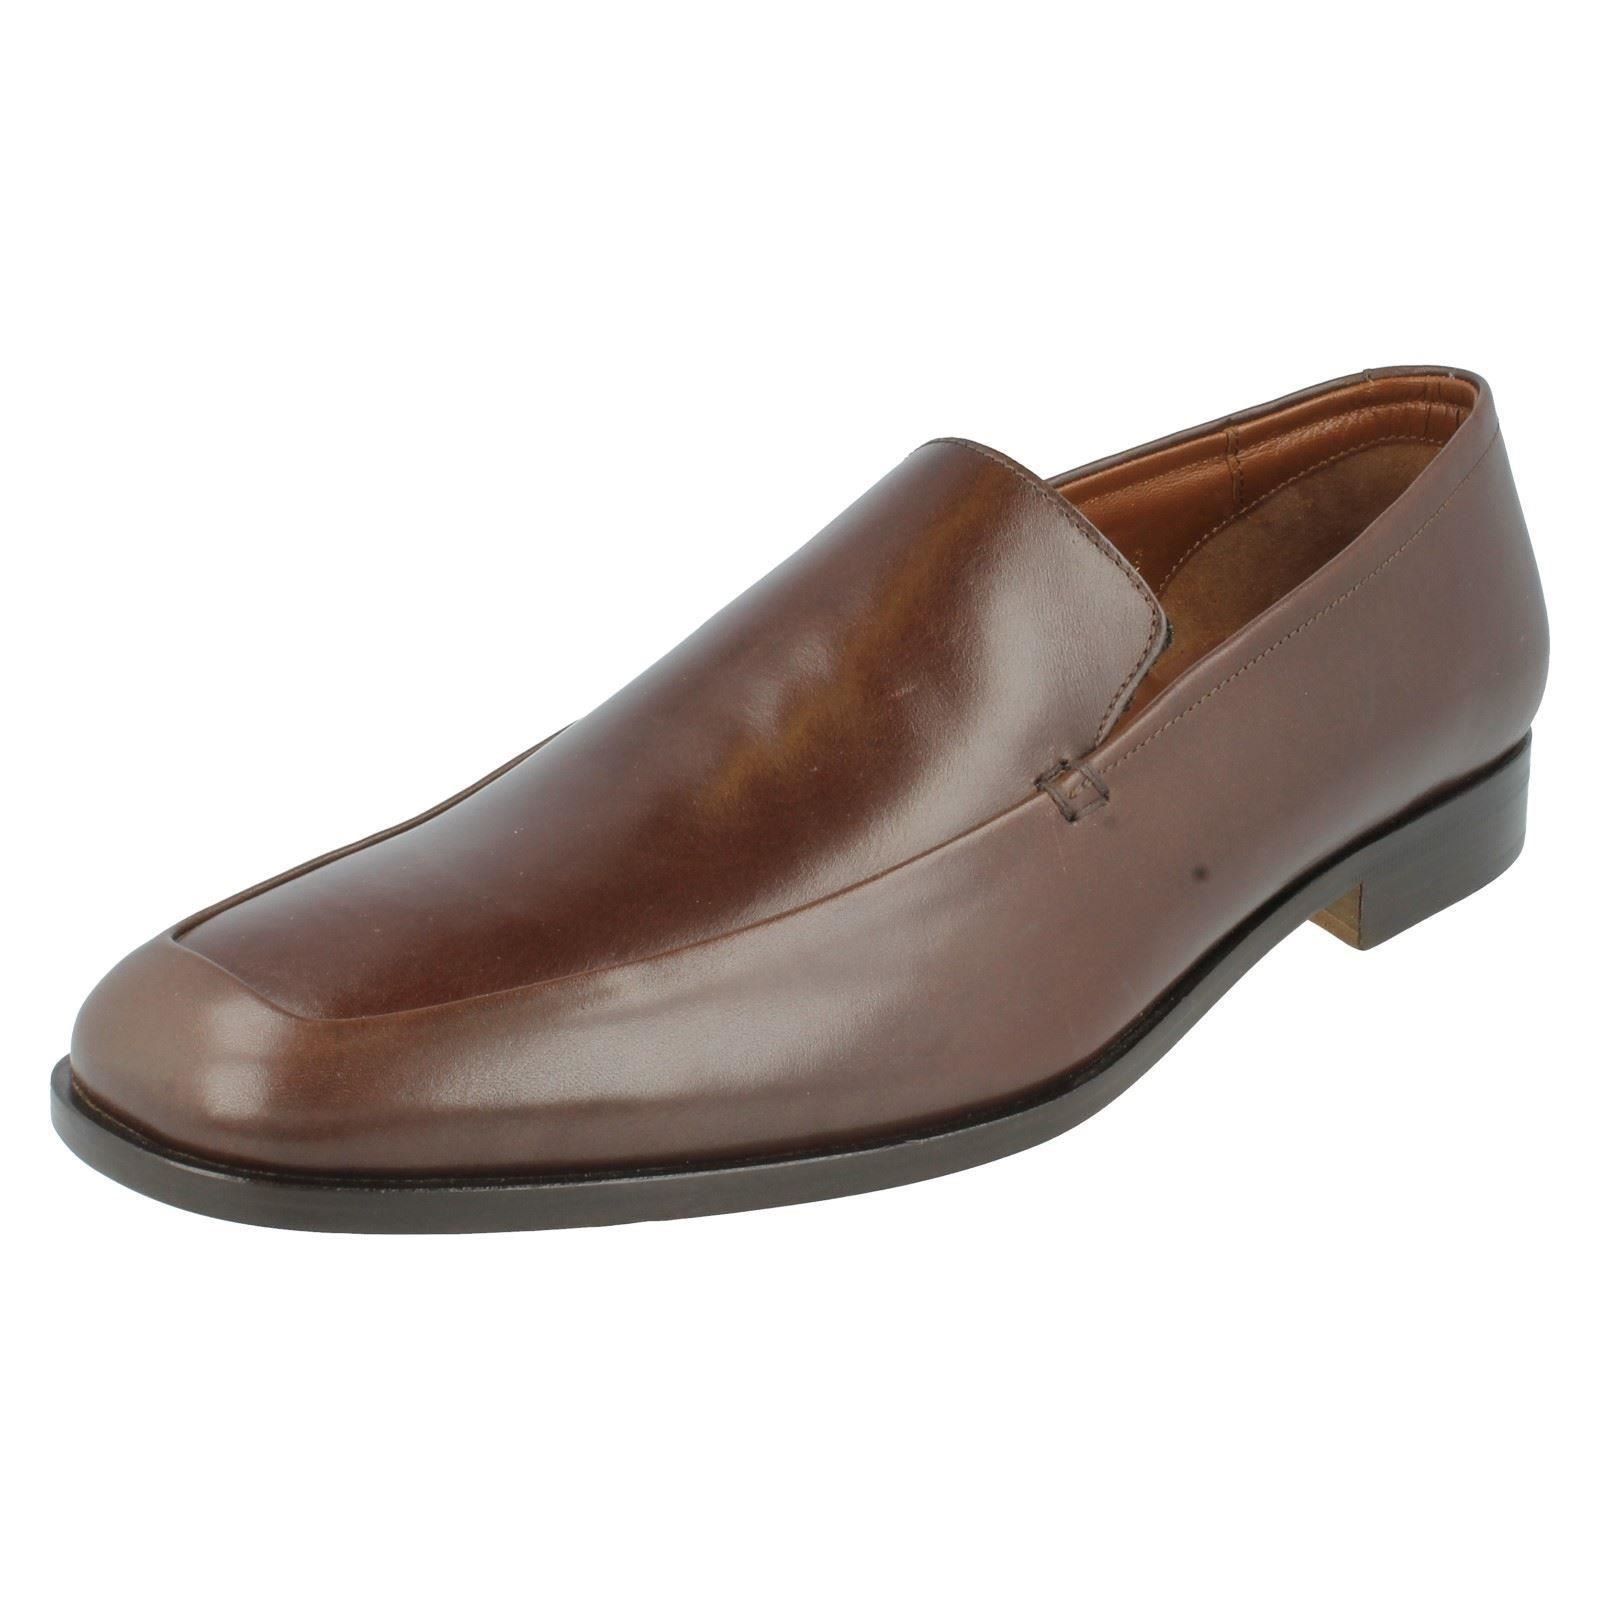 Mens Grensons Brown Leather Slip On Shoes G Fitting Nice